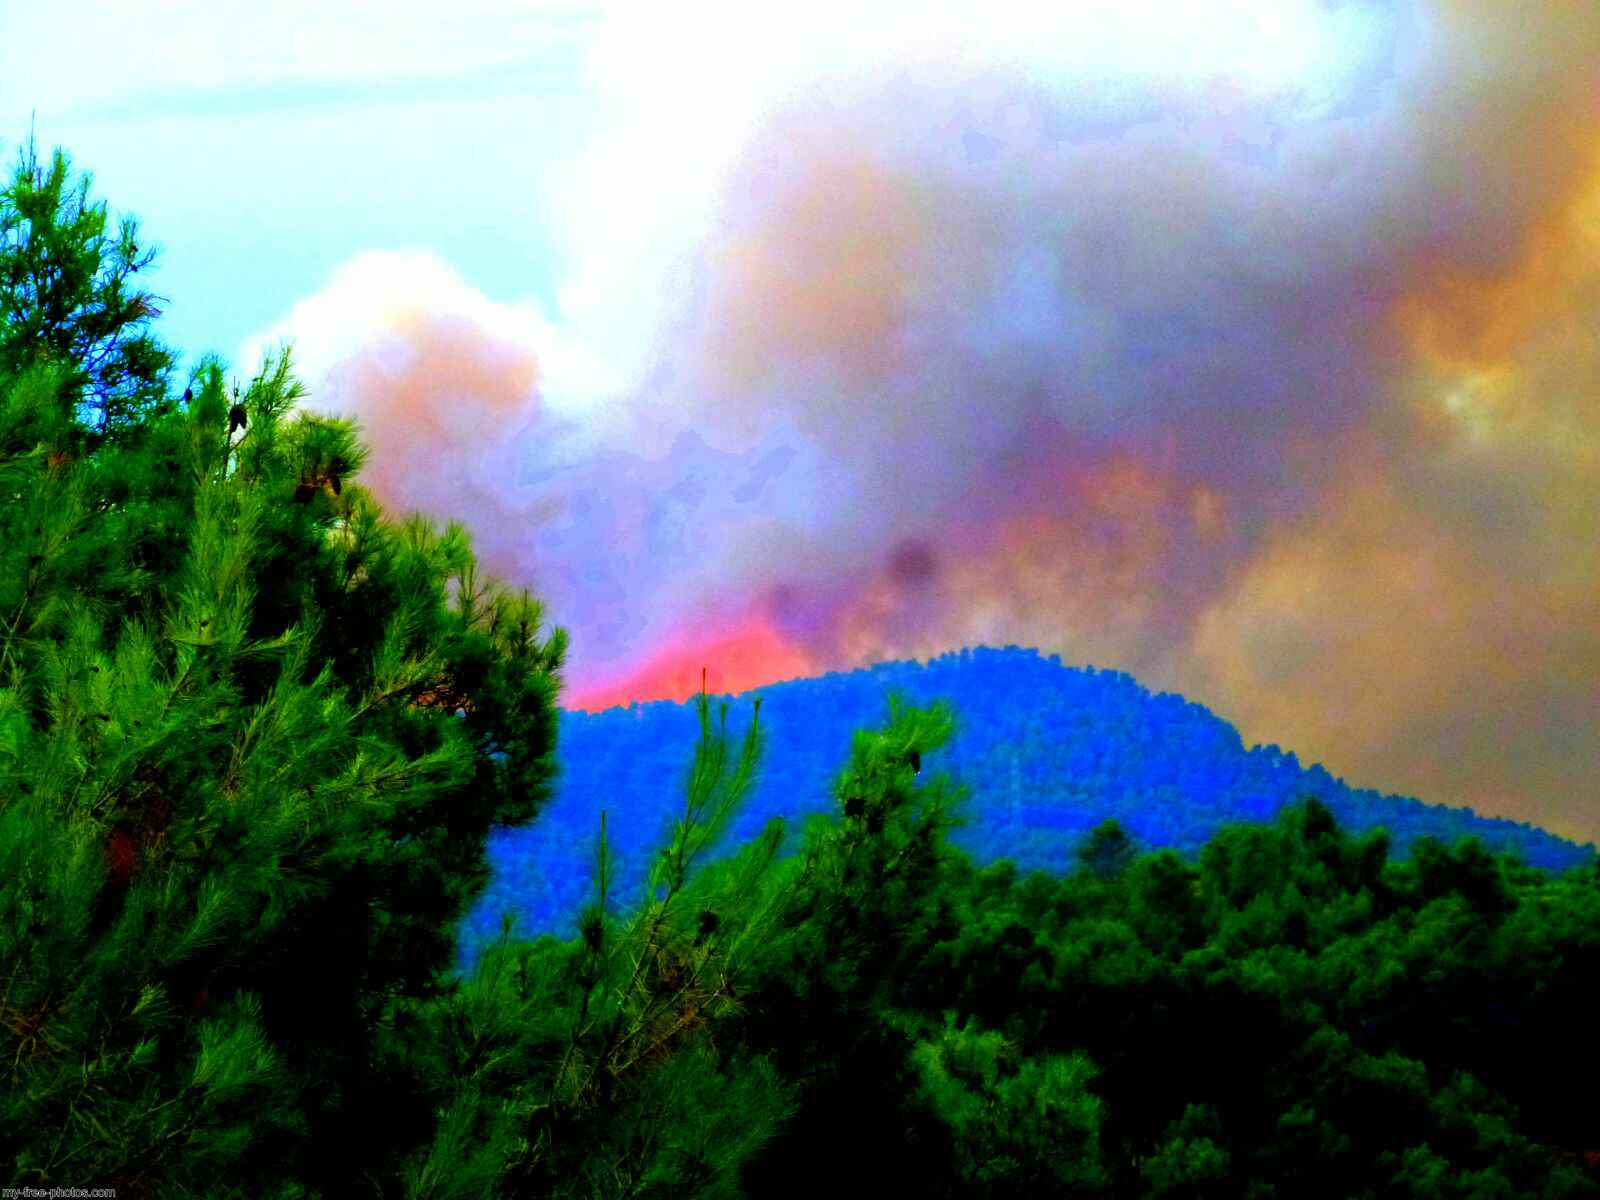 Spain, forest fire